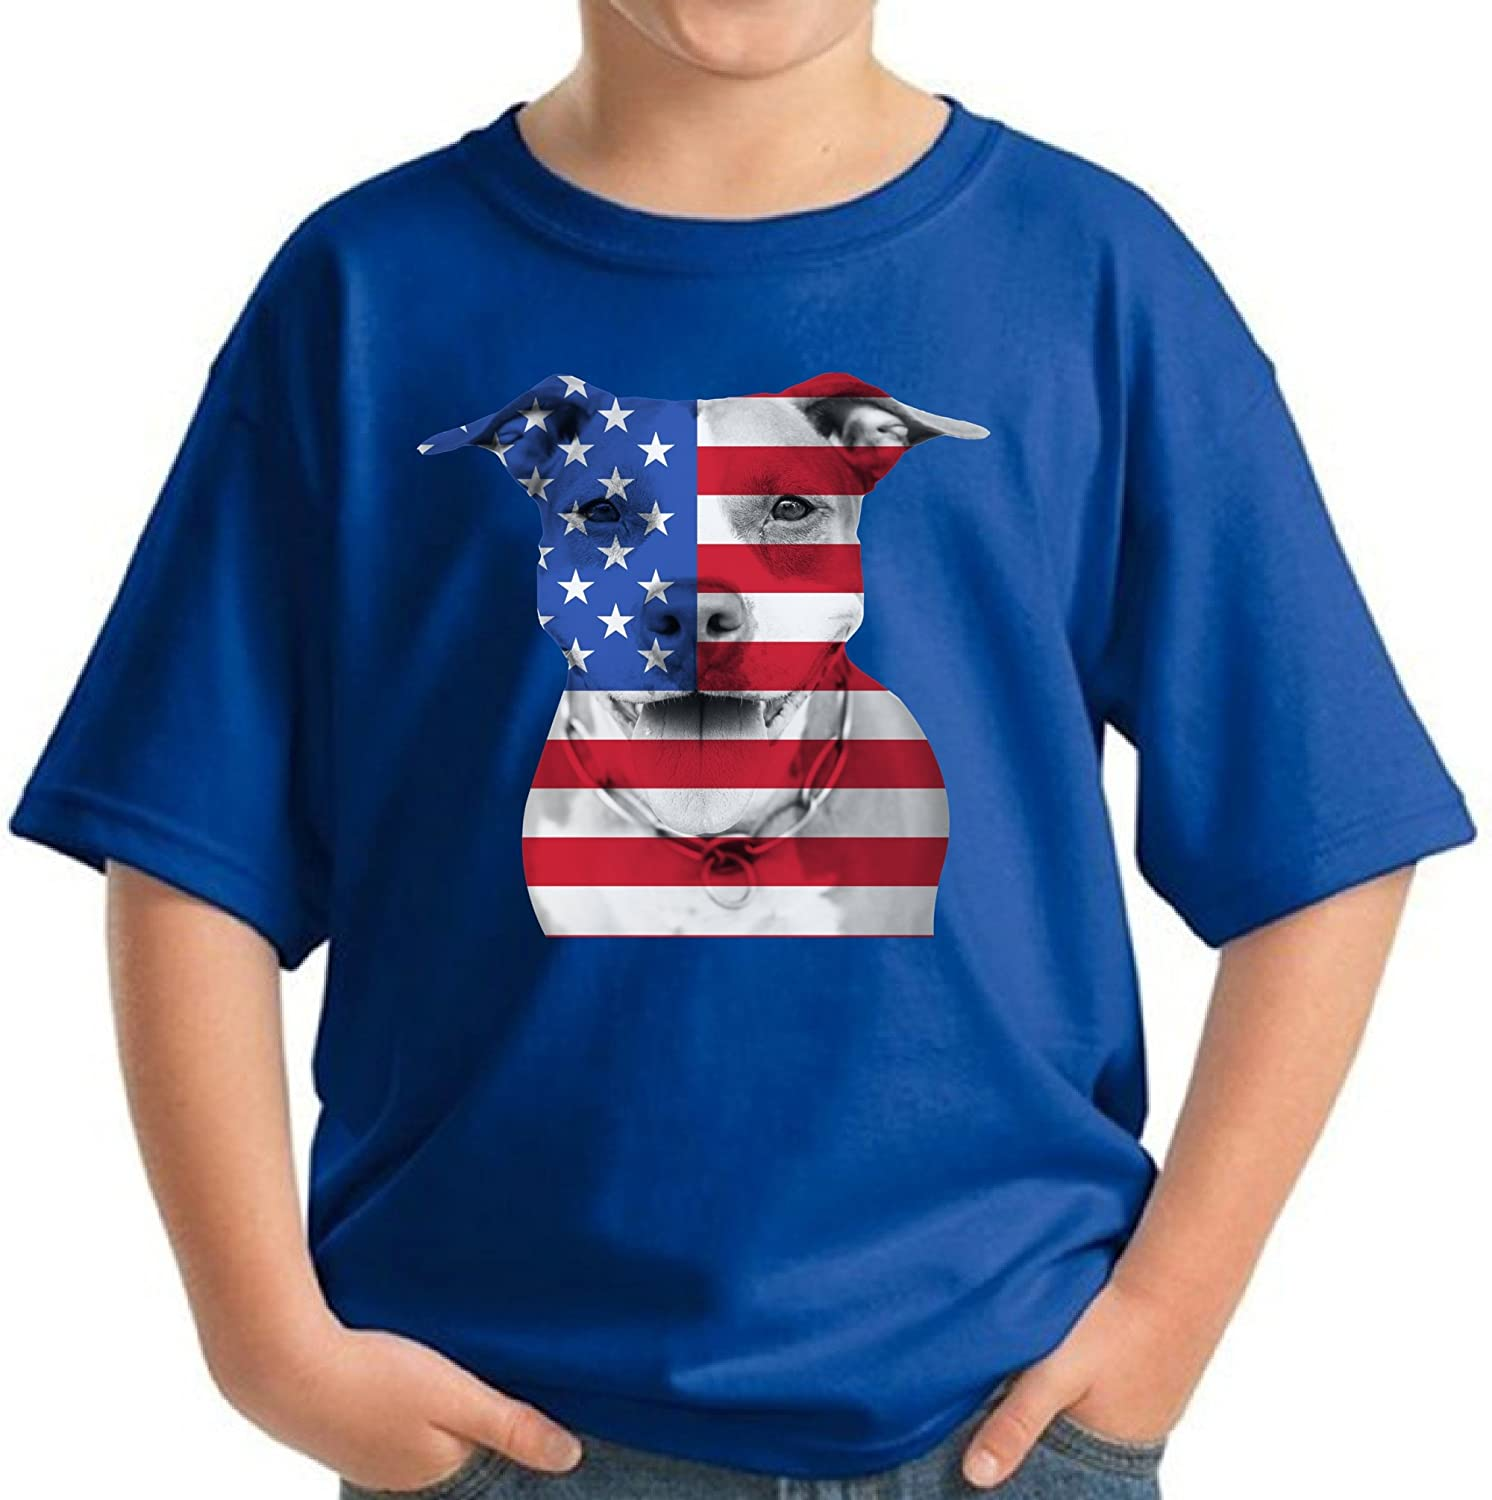 Pekatees USA Shirts for Youth American Pitbull T Shirt Patriotic Gifts for Kids